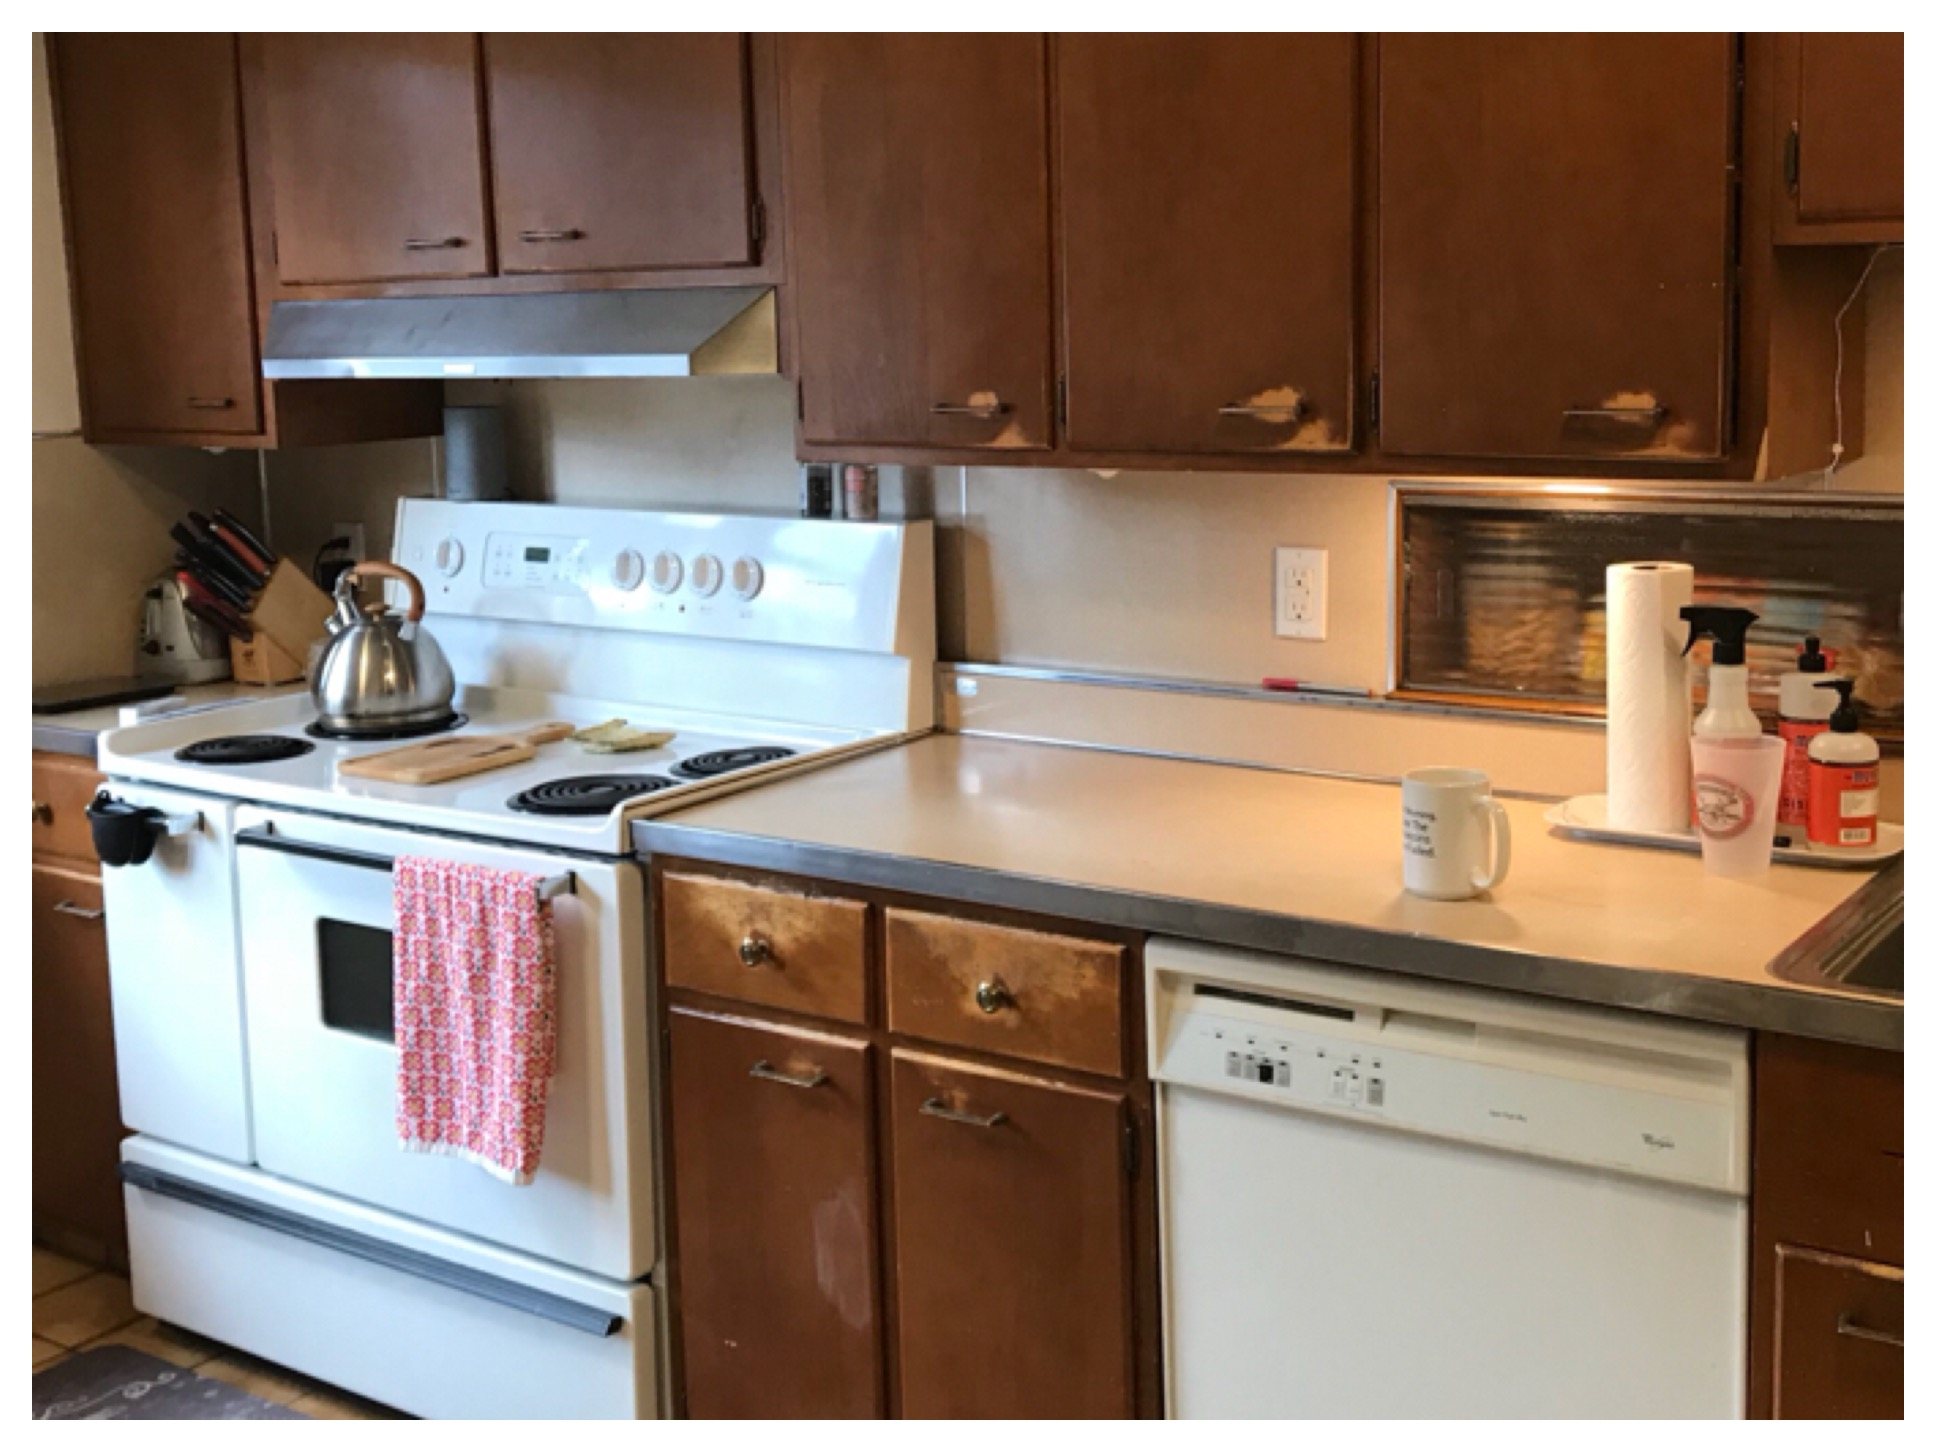 These cabinets show excessive wear and damage. Using low quality, or inappropriate finishes, on kitchen cabinets will result in poor performance and substandard durability.